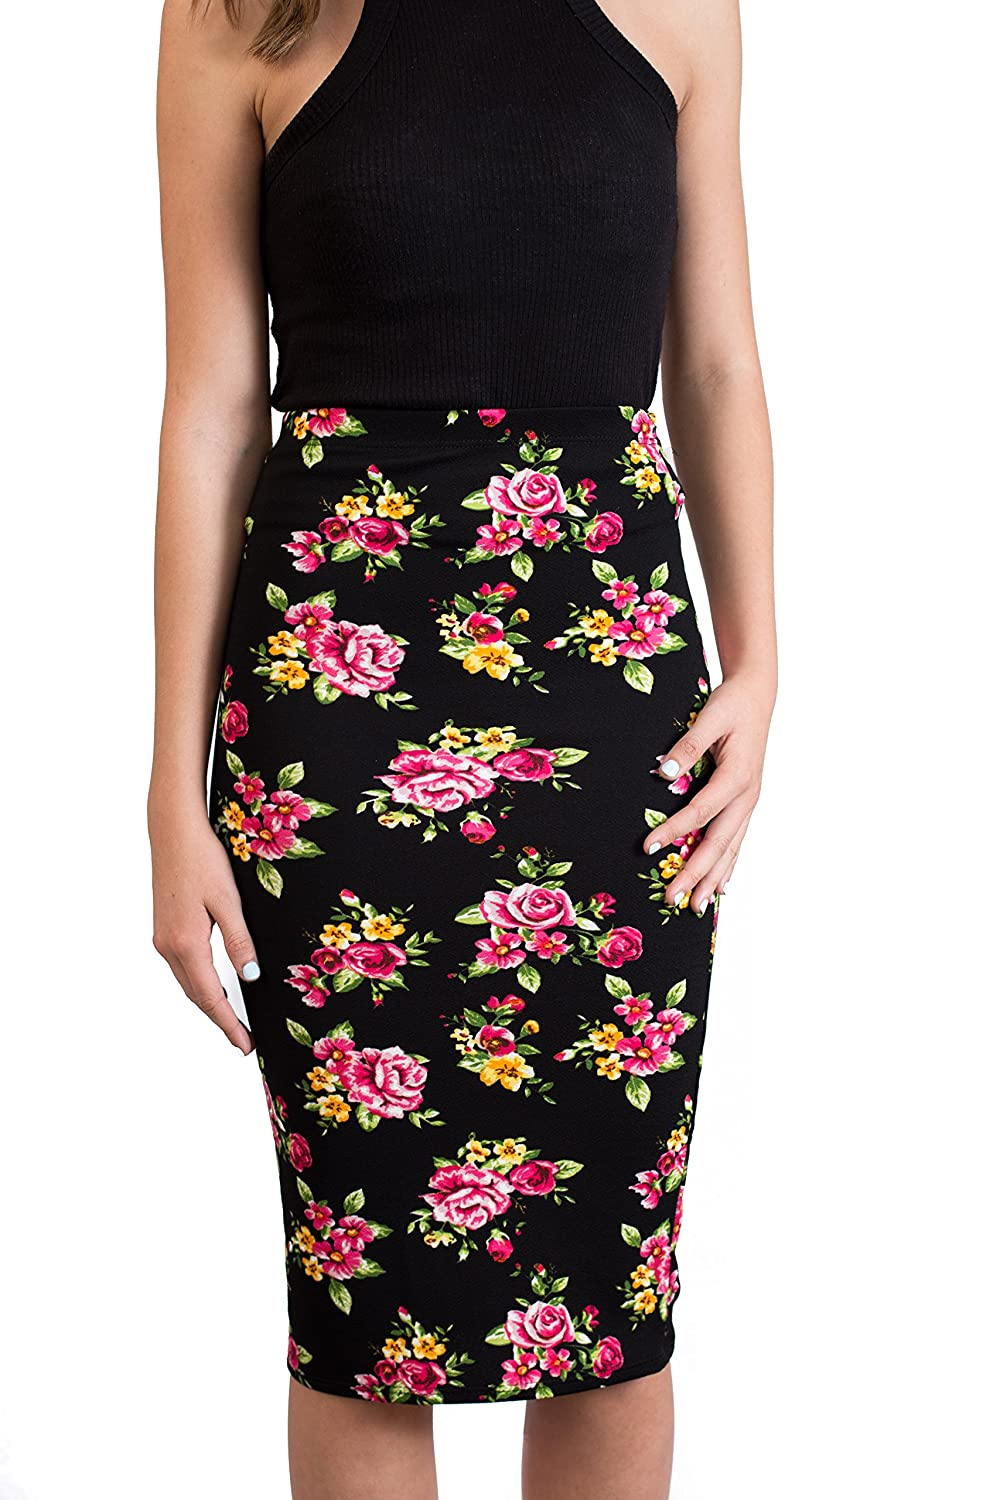 CALDORE USA High Waisted Midi Pencil Skirts - Women (Junior Ladies) Knee Length Dress Wear